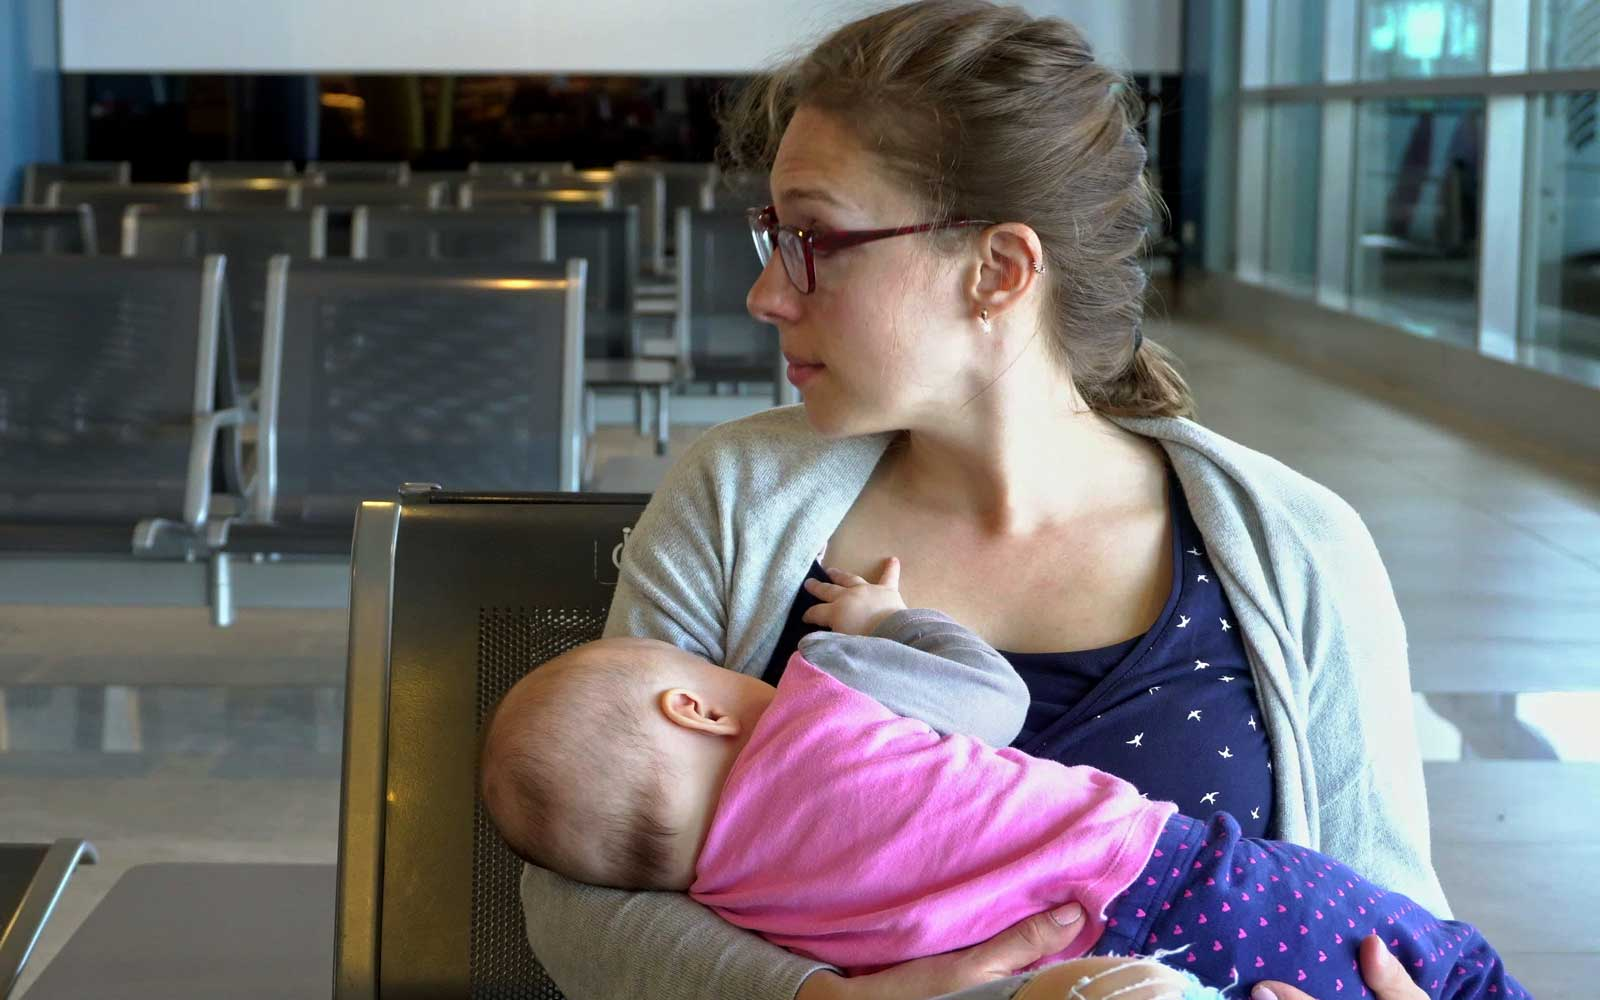 All Major U.S. Airports Must Now Have Rooms for Breastfeeding